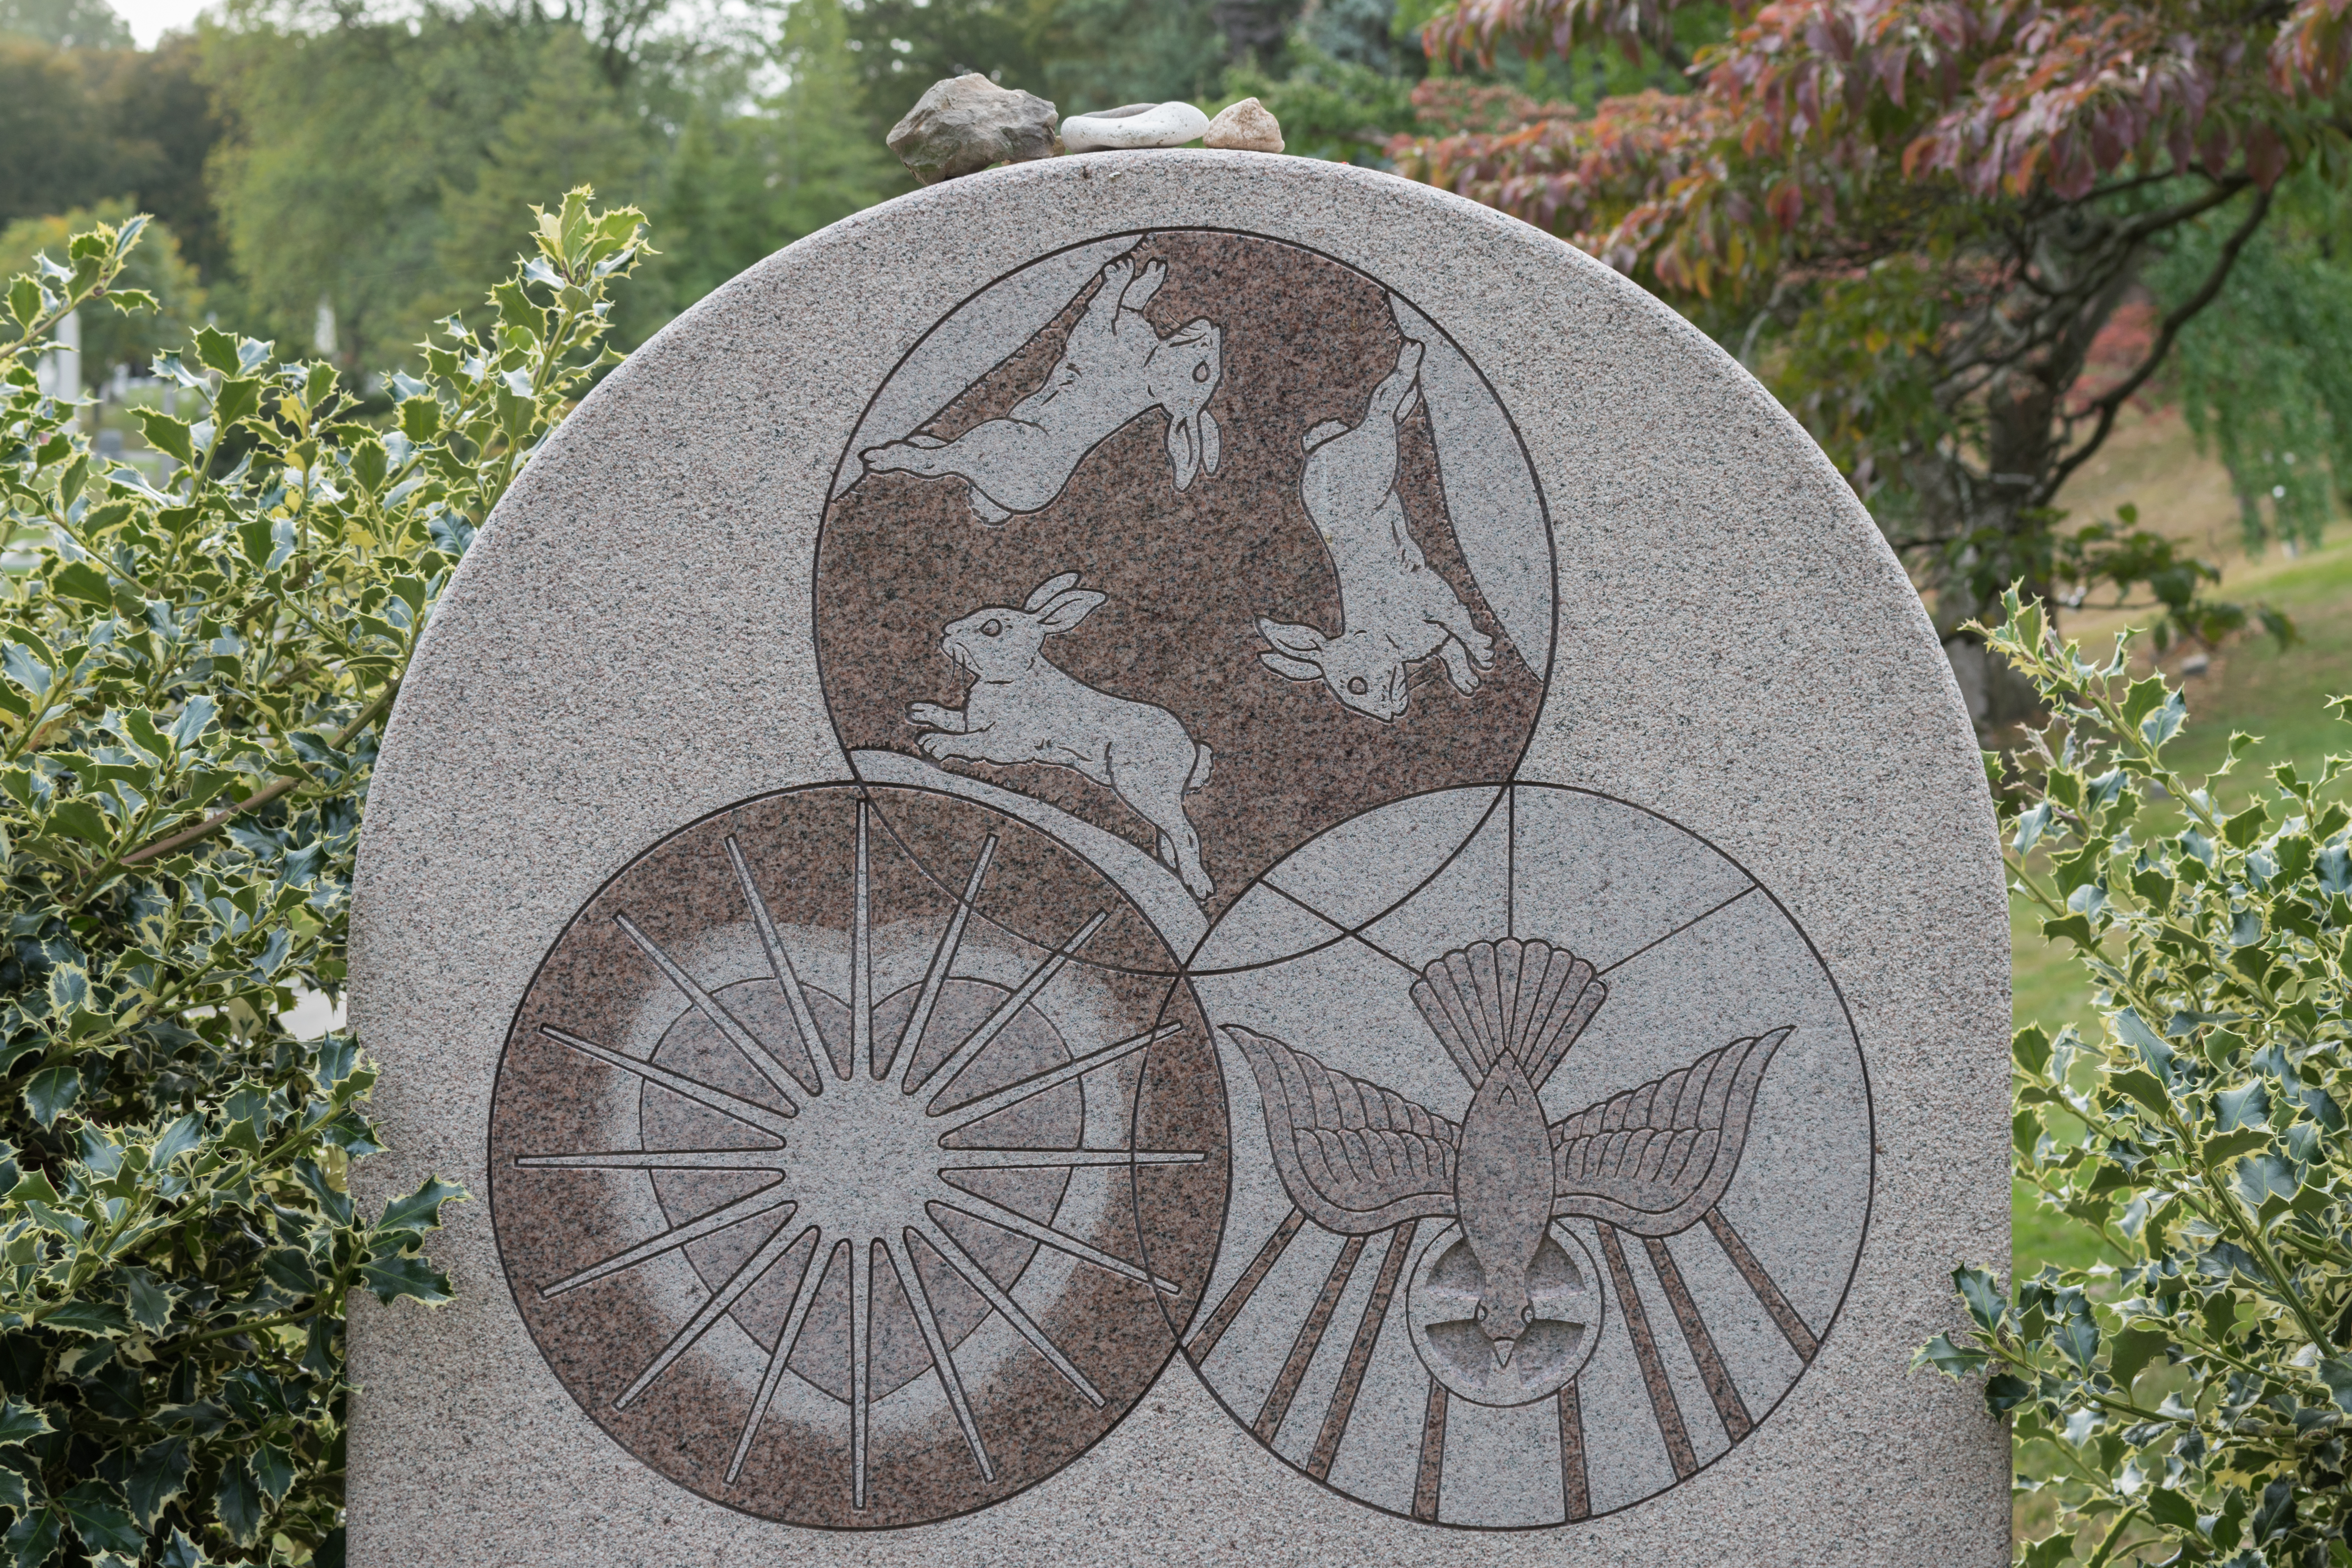 Rabbits, a descending dove, and an intricate heart sit carved into this unique and incredibly detailed custom LAURENTIAN ROSE® granite memorial.